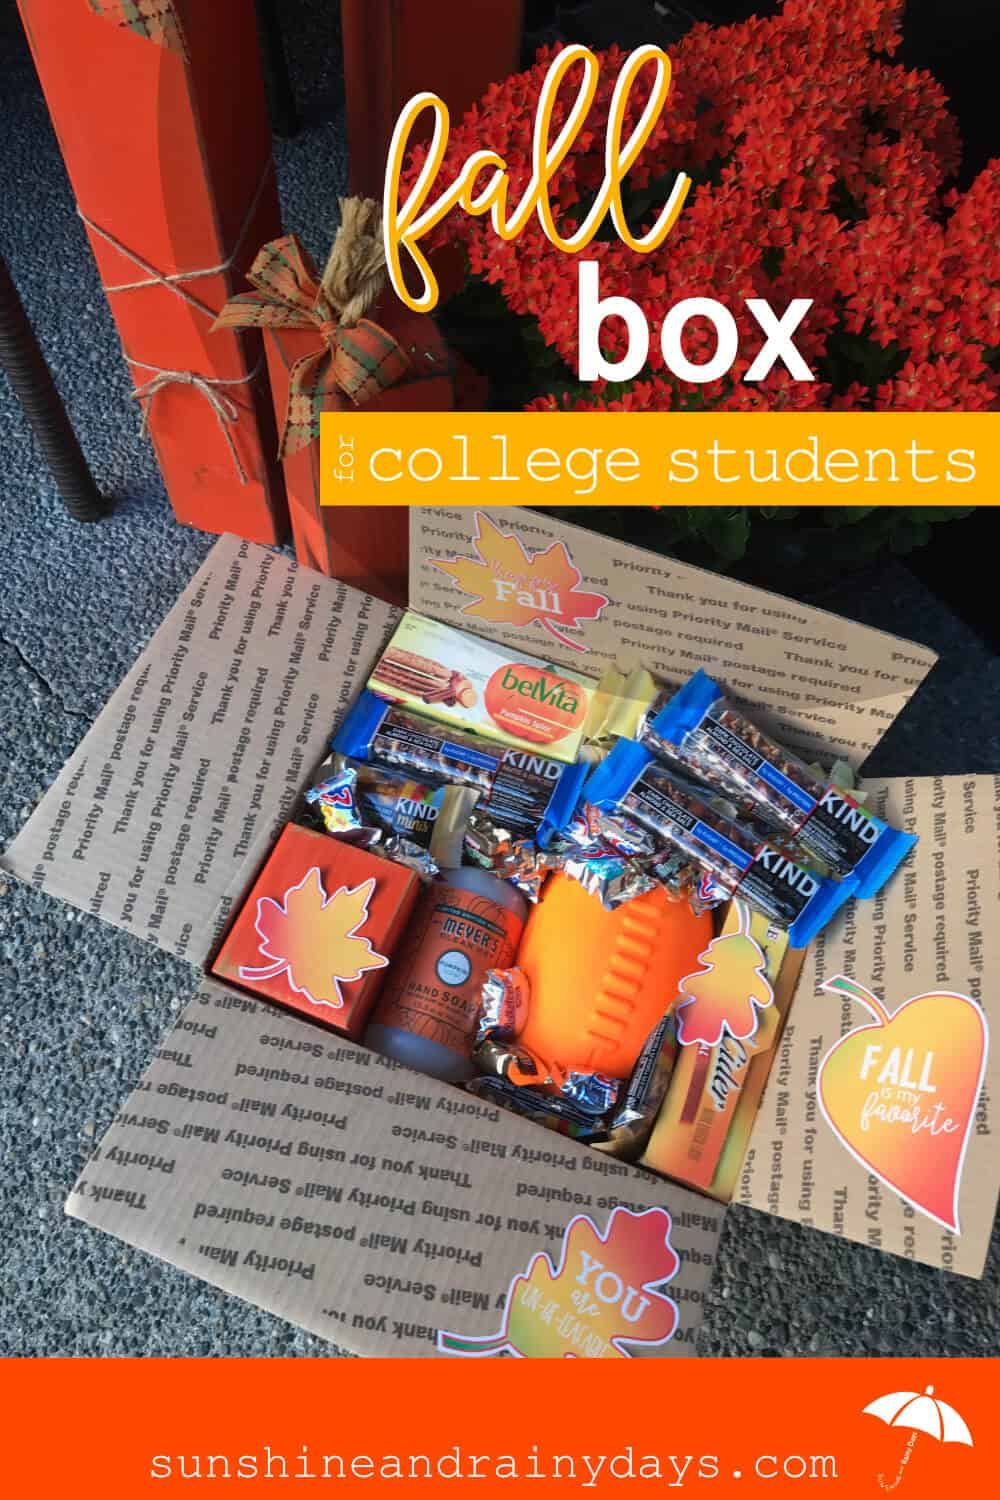 Your college student is settled into dorm life and working hard on papers, speeches, and keeping up with laundry. You have settled into an empty or emptier nest and are ready to send a Fall Box to let your awesome kid know how much you love them!